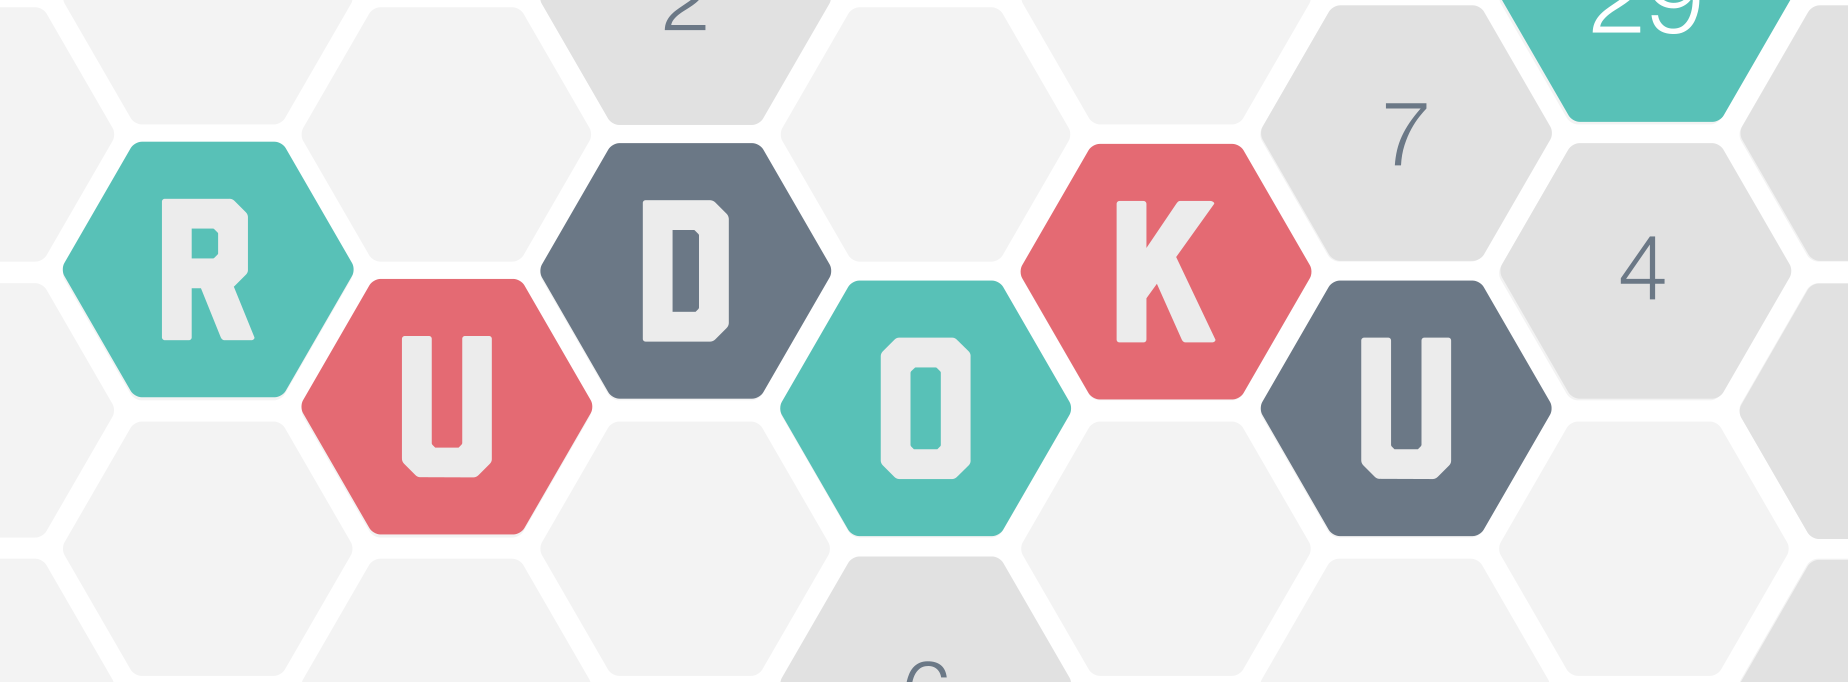 Introducing Rudoku: A Numbers and Logic Game for Experts